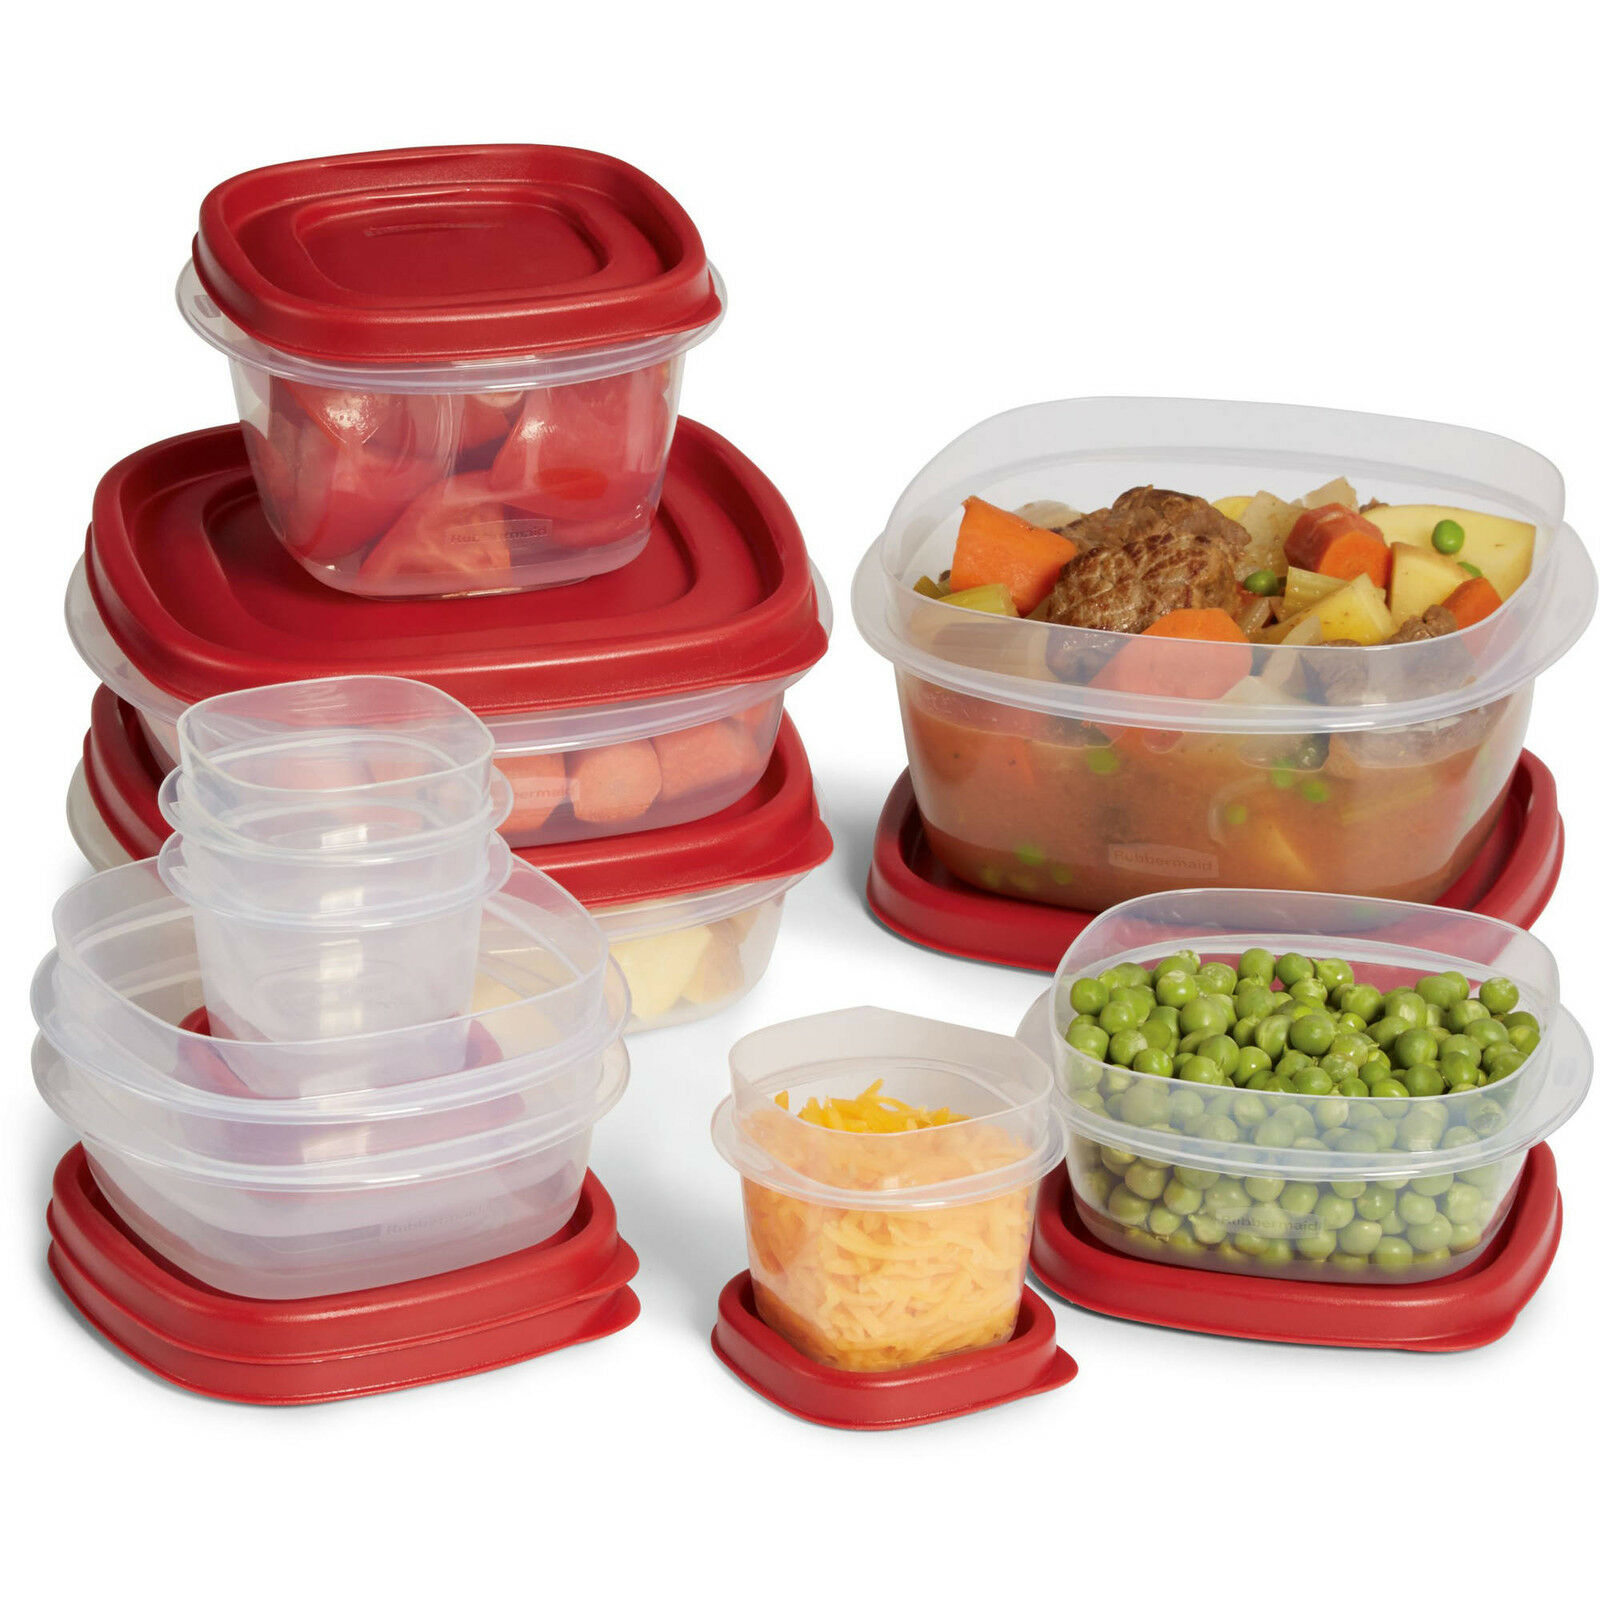 Rubbermaid Easy Find Lids 20 PC set food Storage Container paypal